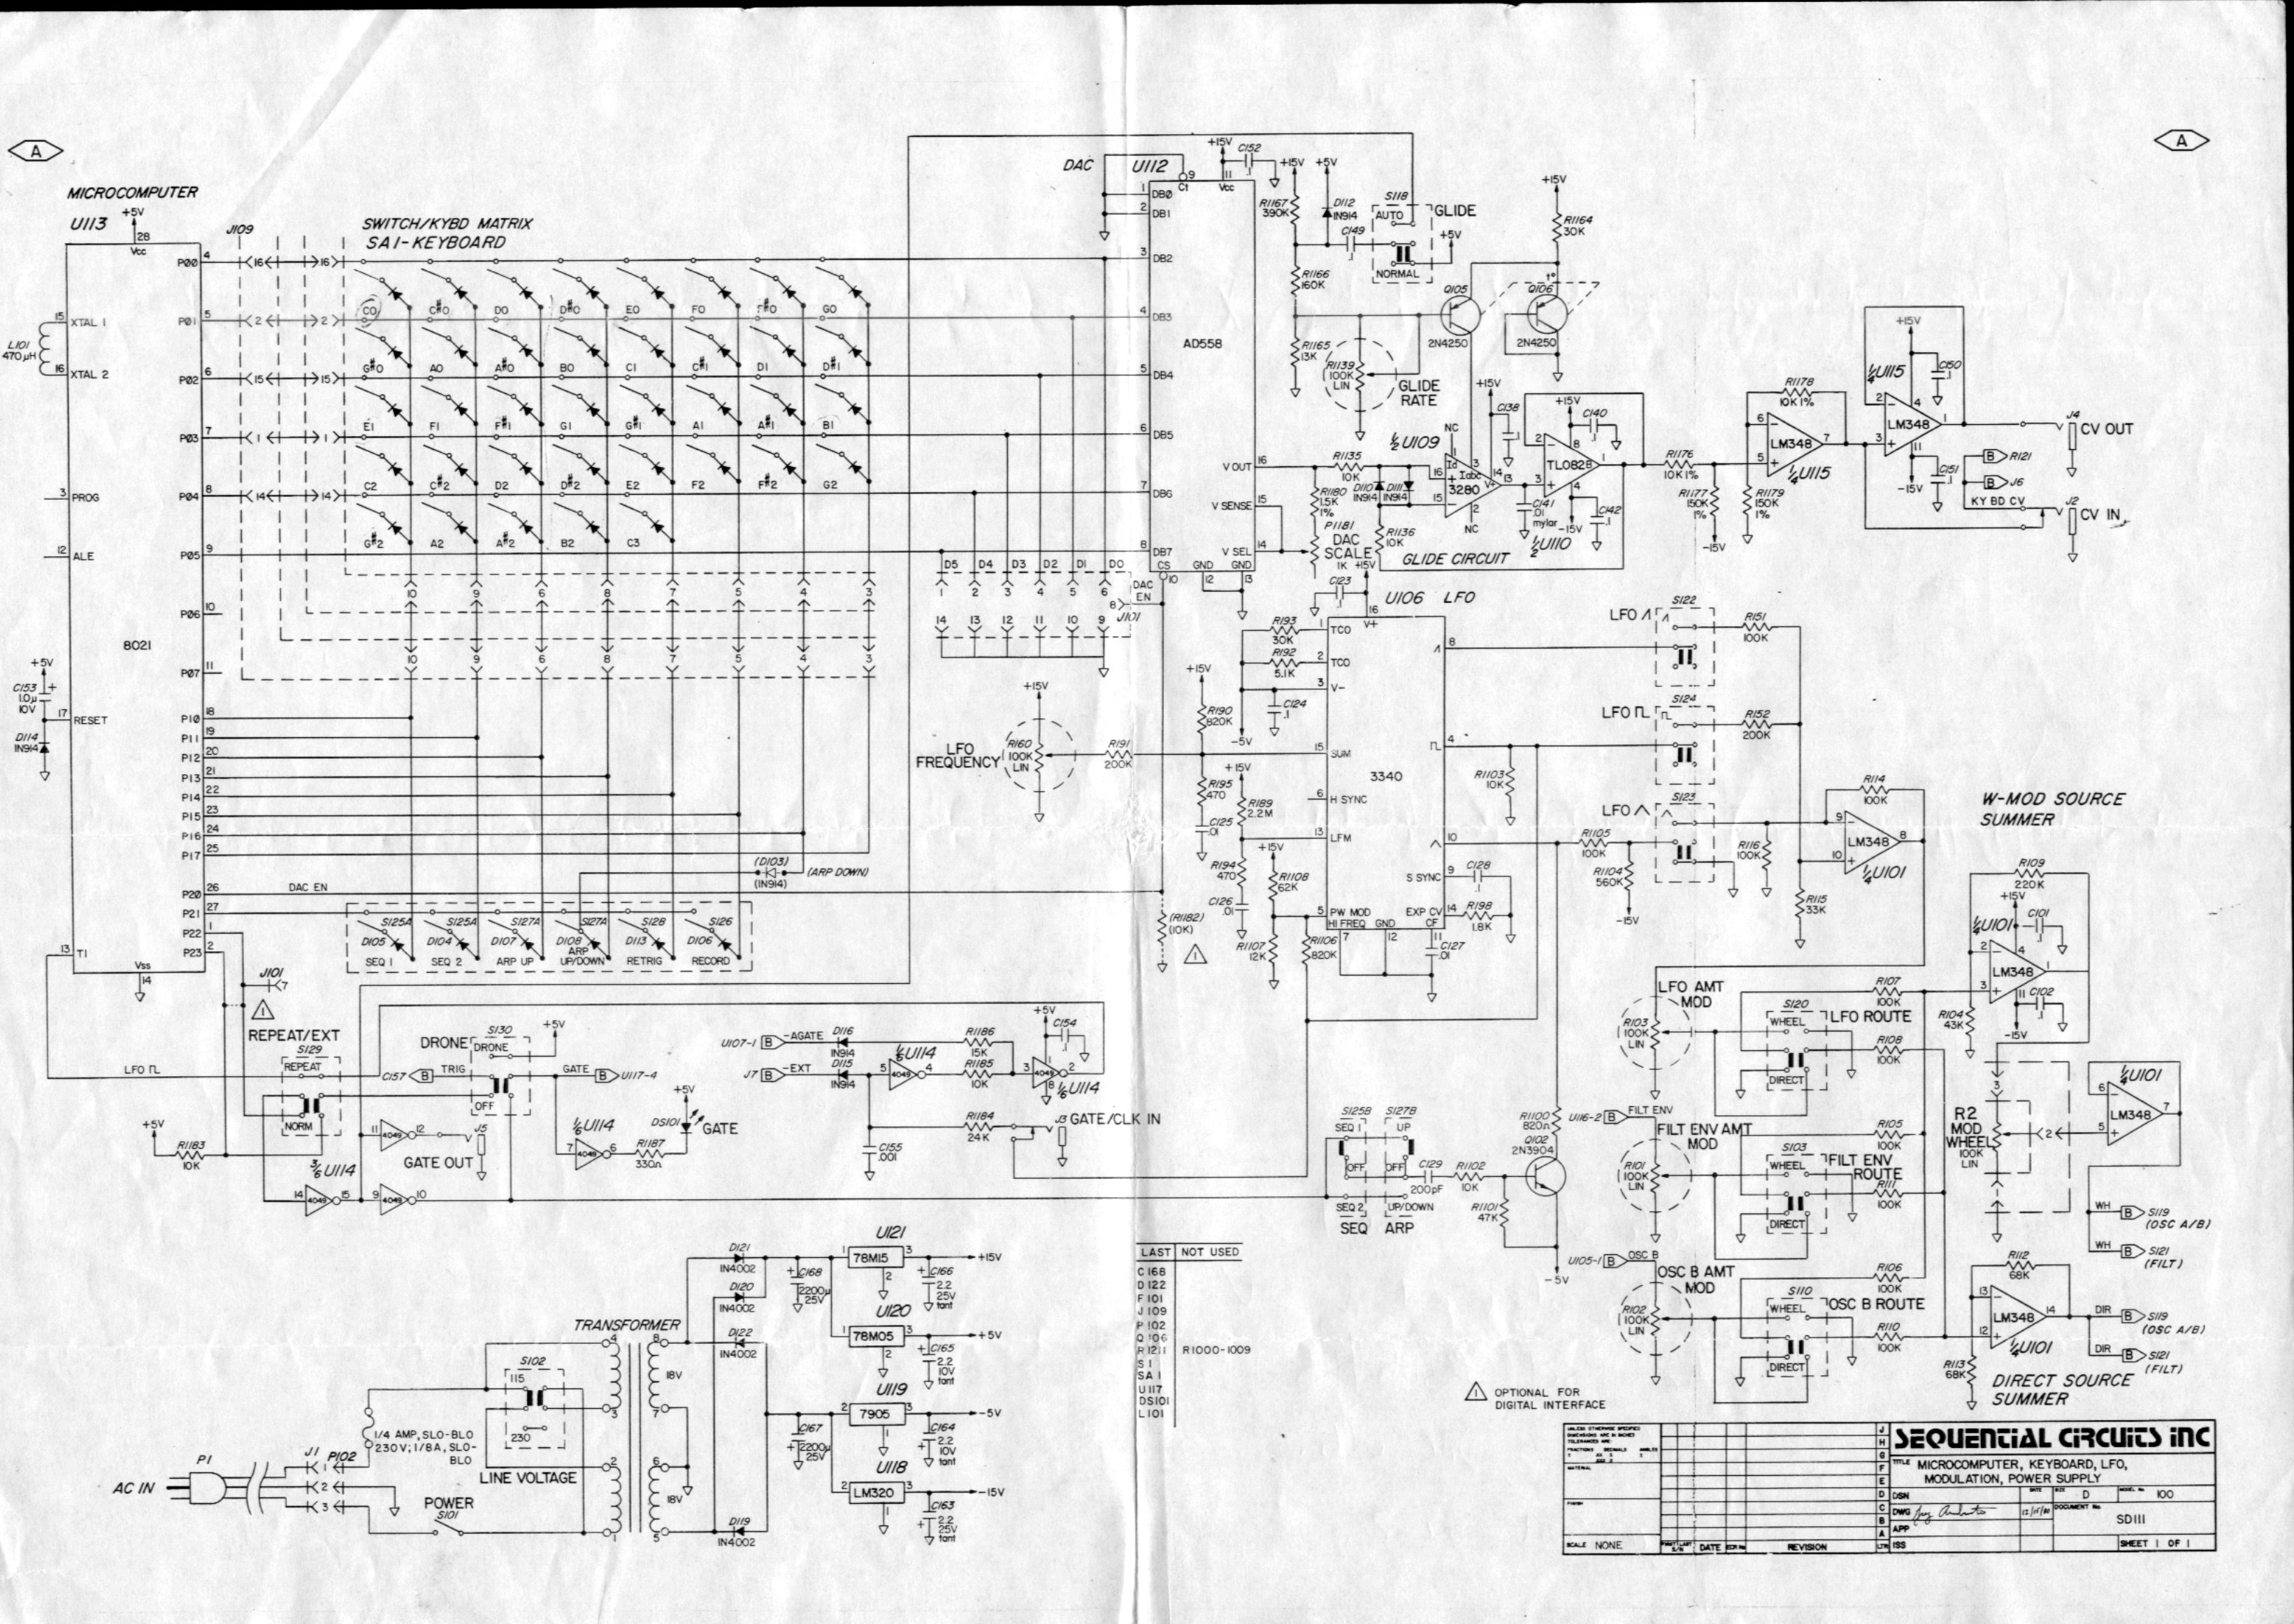 Cerwin Vega Wiring Diagram Wire Schematic Bose 301 D9 B2 Elsalvadorla Logo Decal